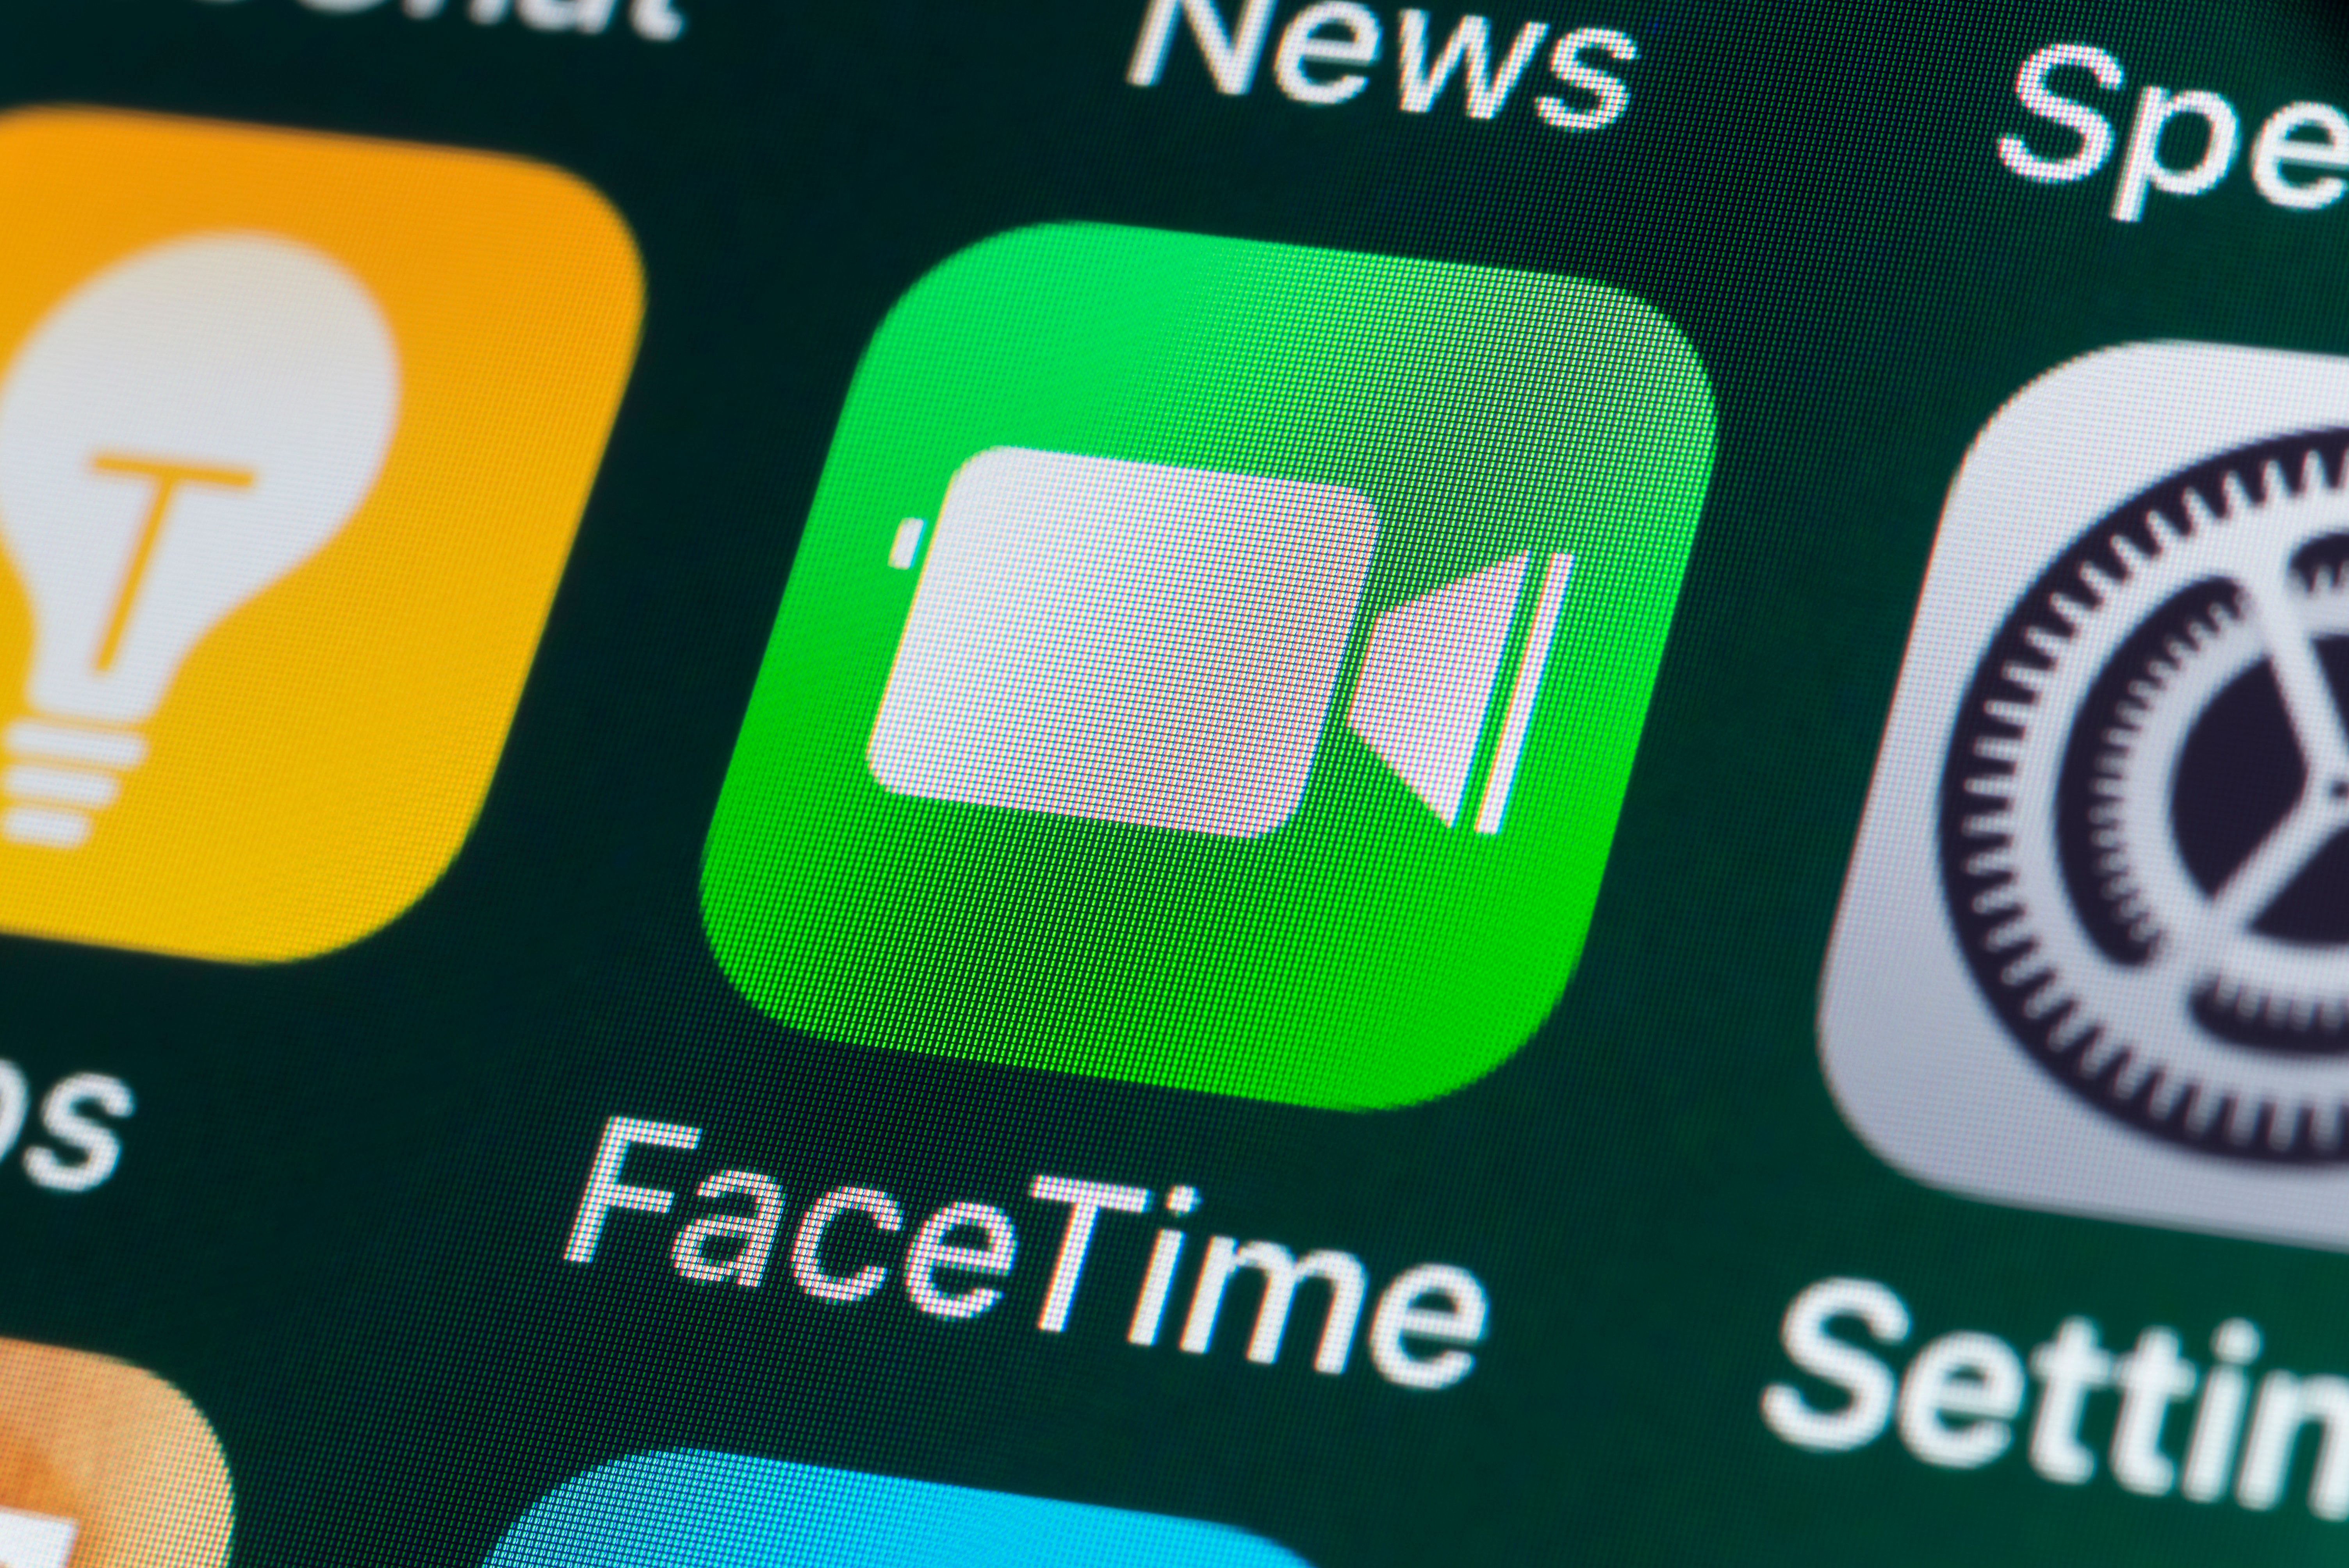 Apple Releases Fix for Group FaceTime Snooping Bug in iOS and macOS